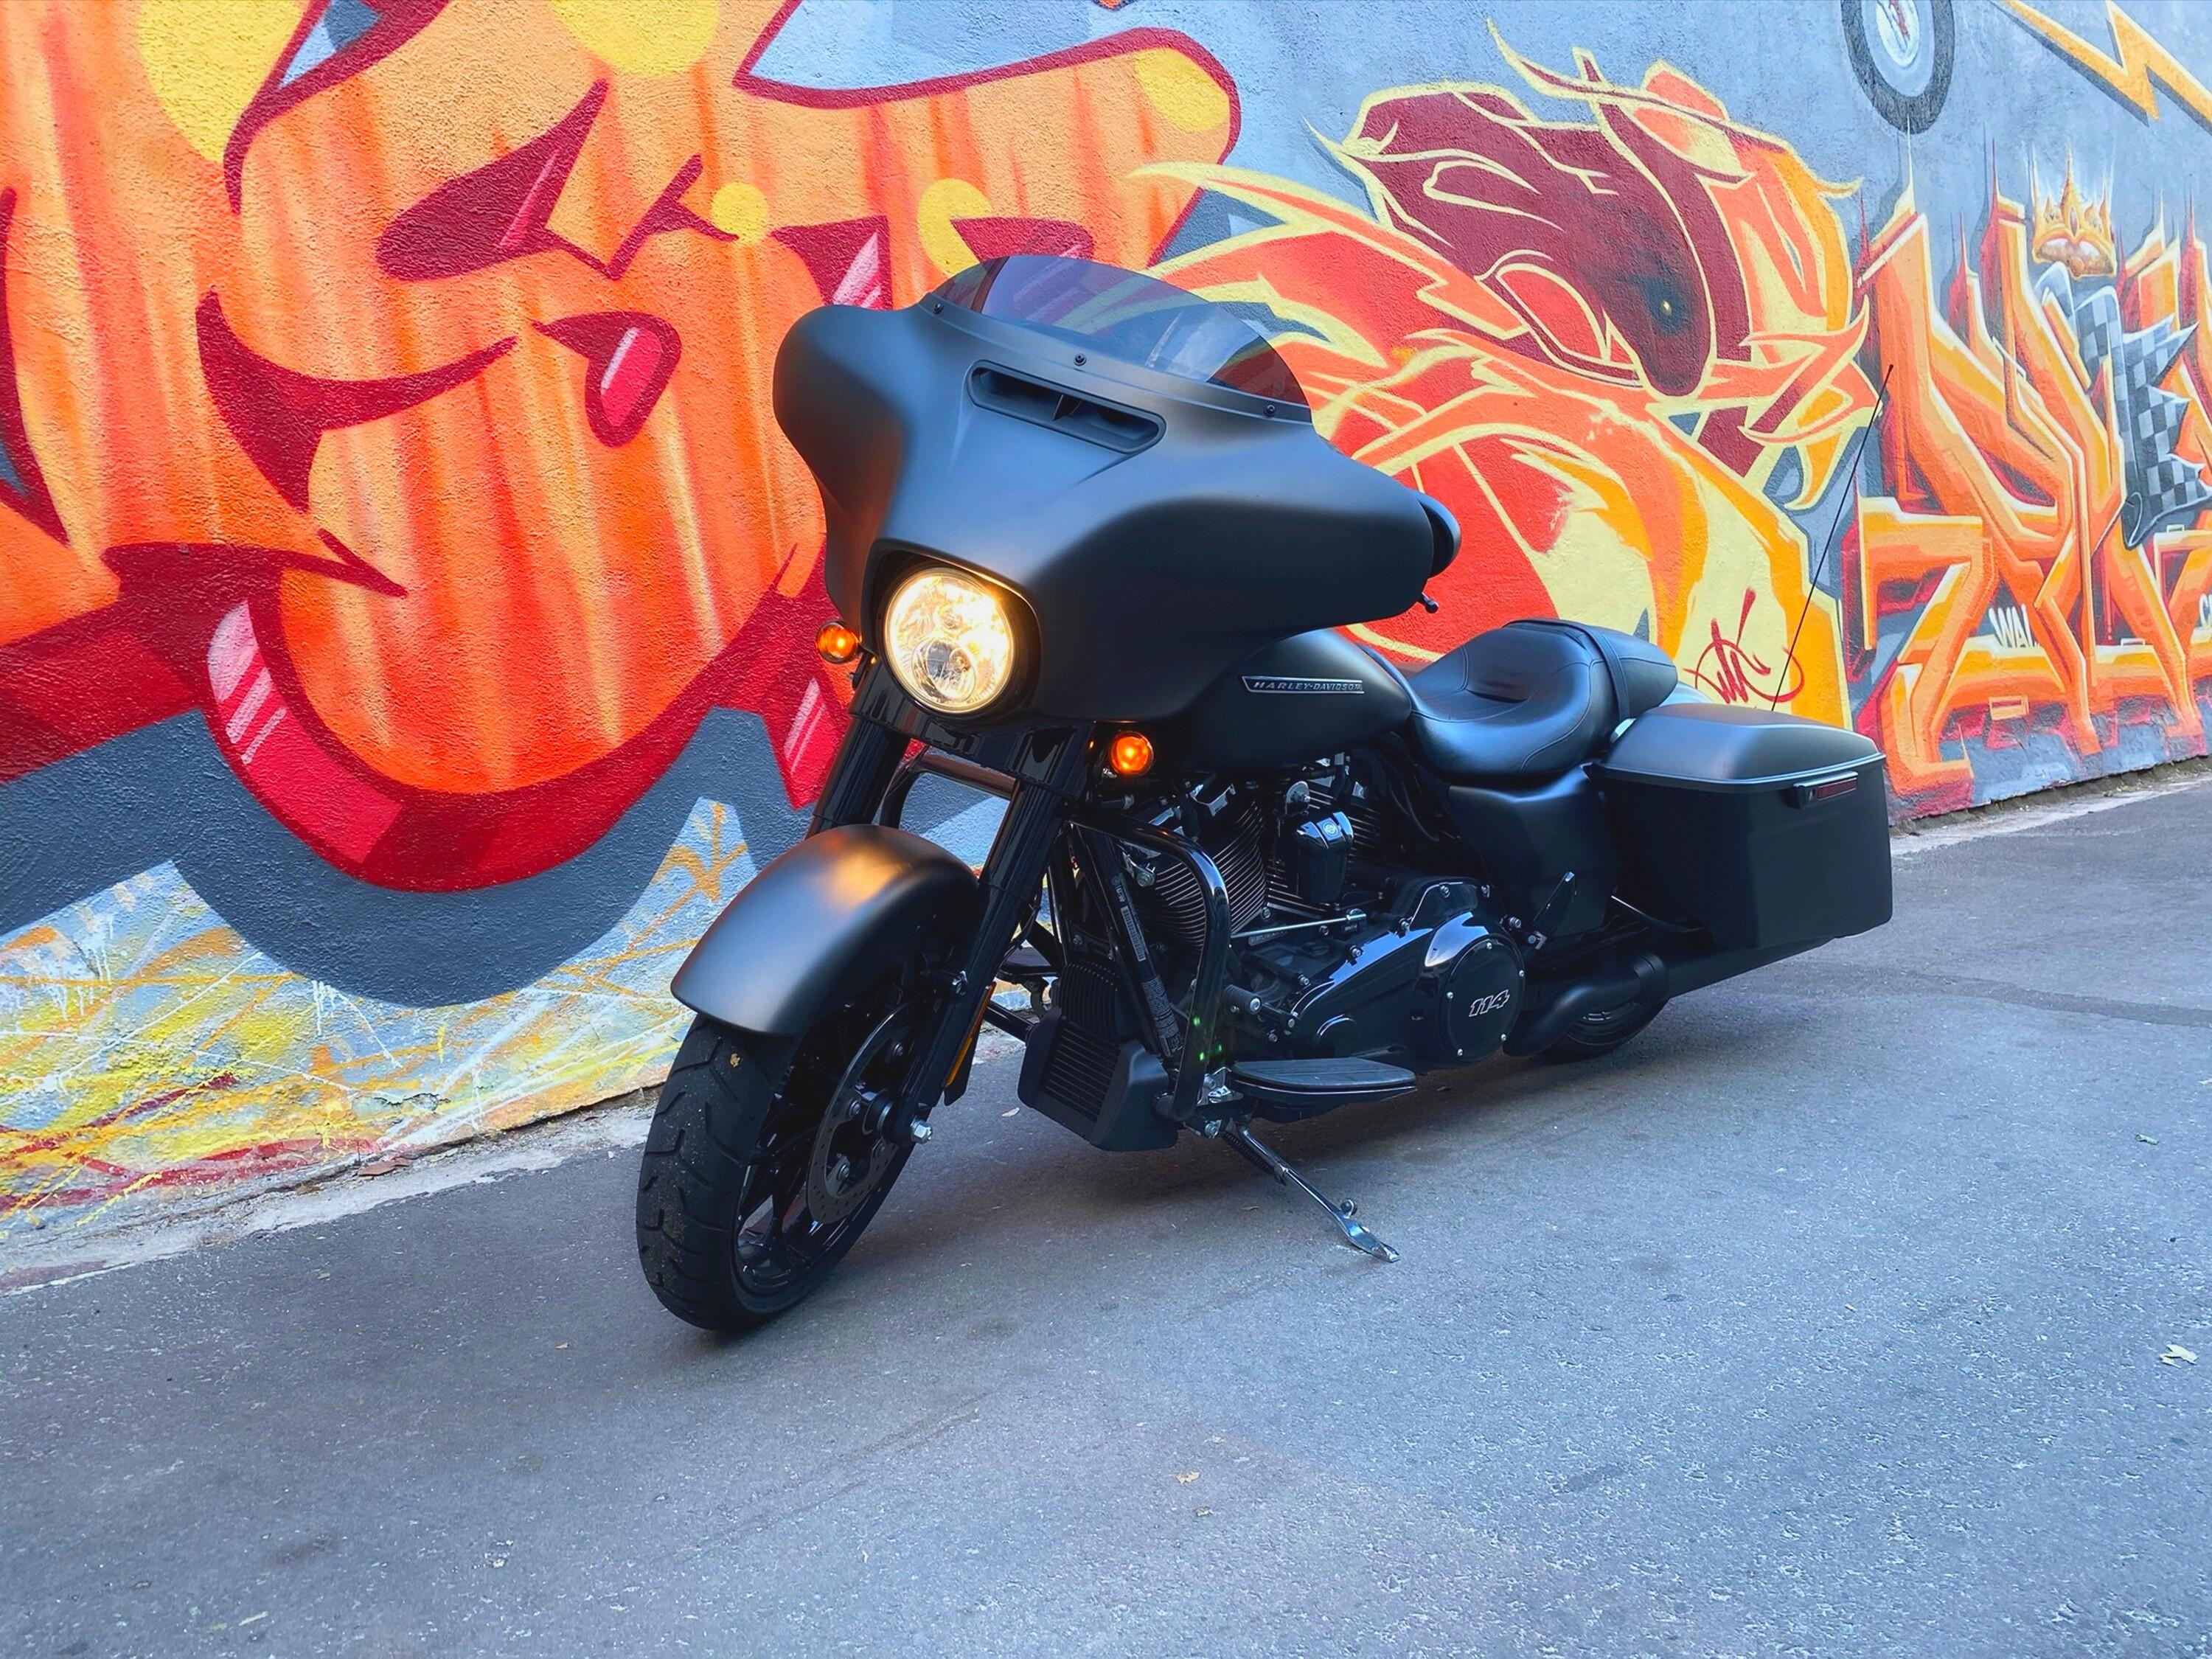 <p>Keeping a big bike like a Street Glide upright can be tough, but Harley's idea for a top case-mounted gyroscope would help with that.</p>